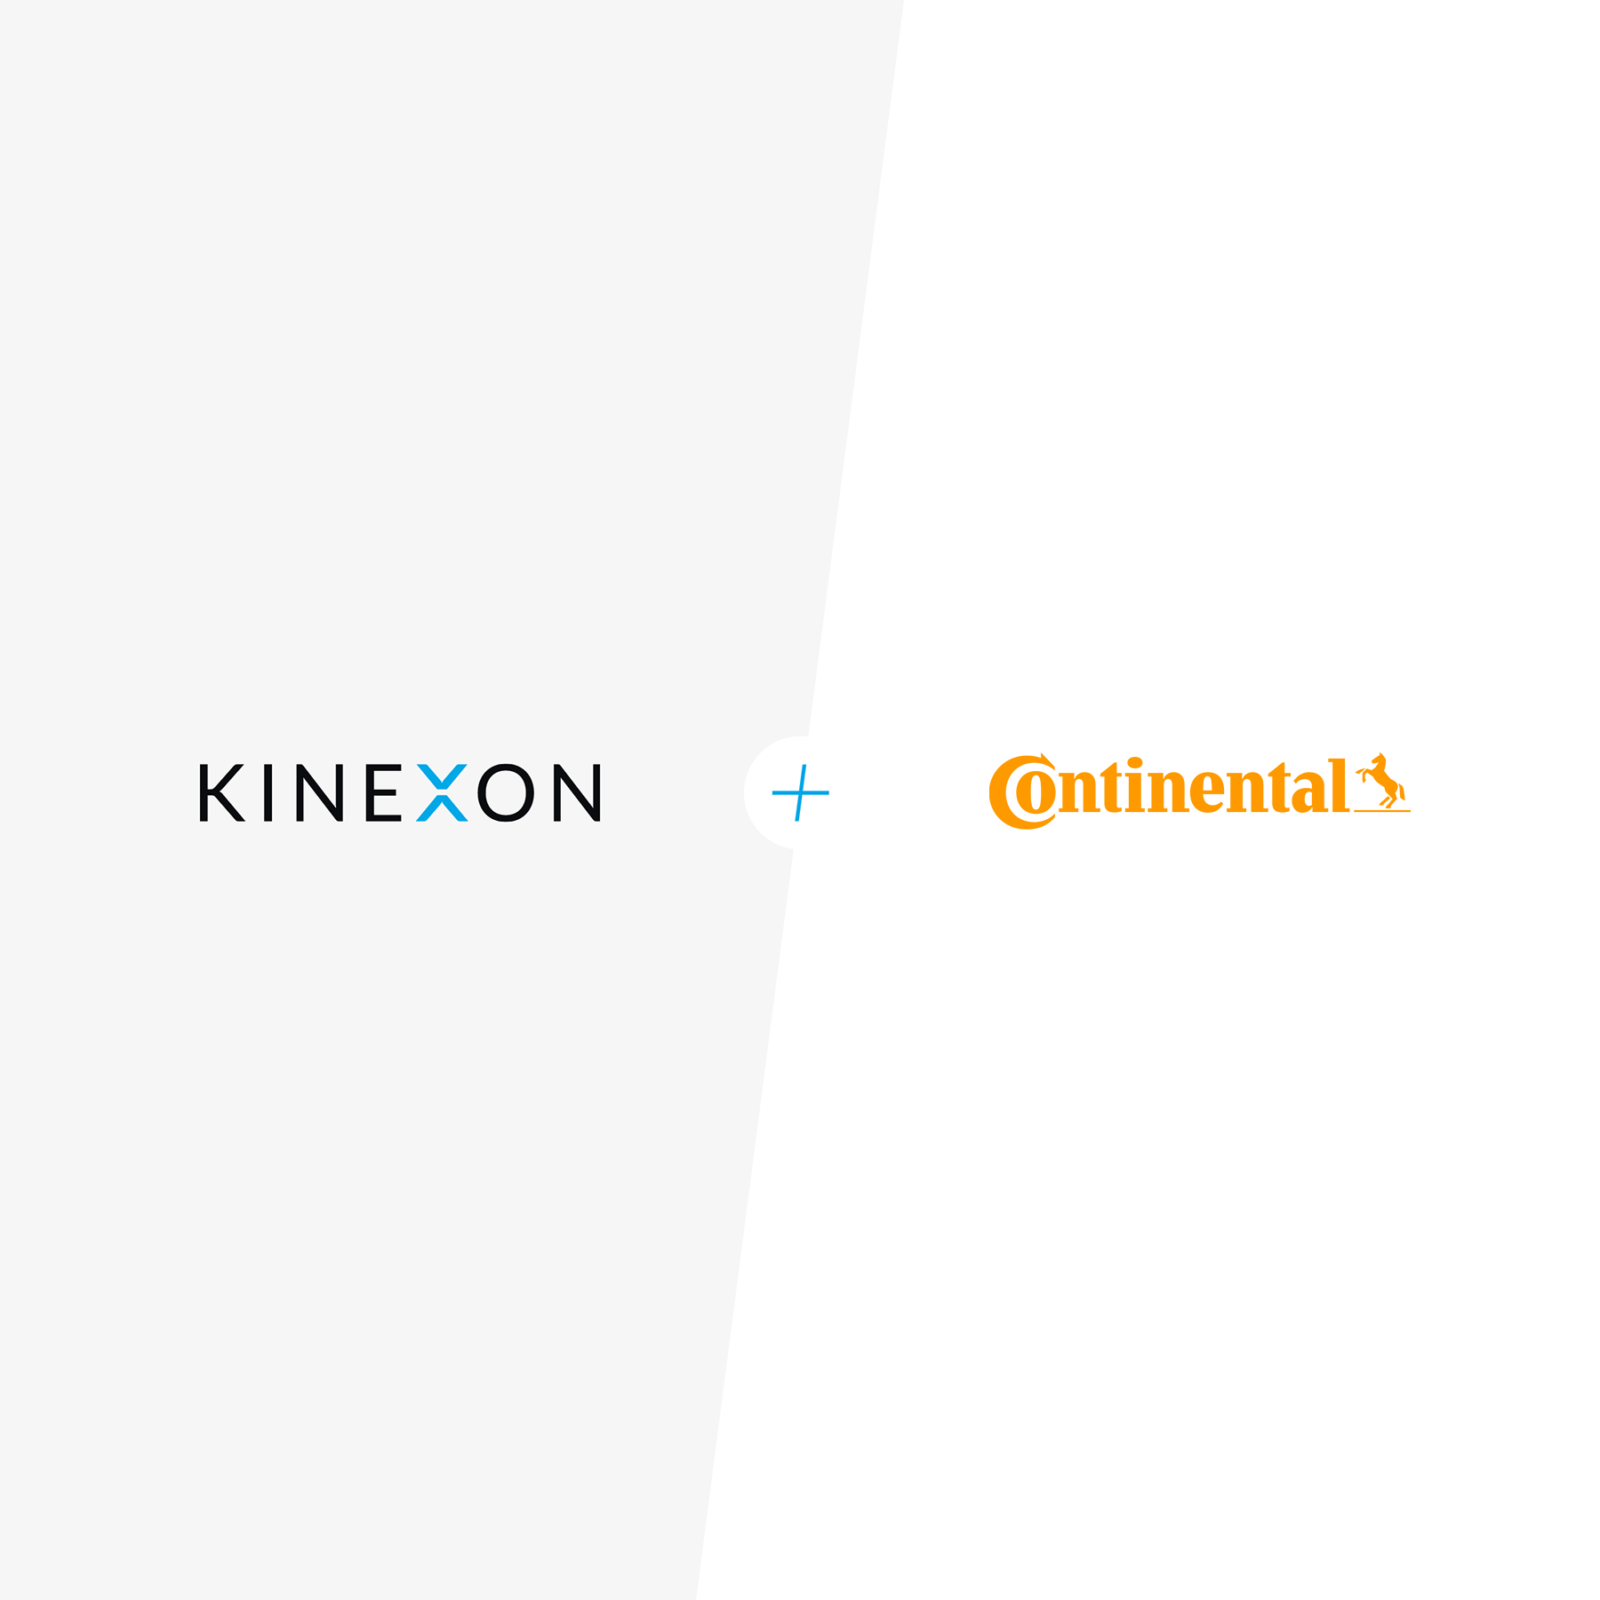 KINEXON Indsutries Partner Post Continental